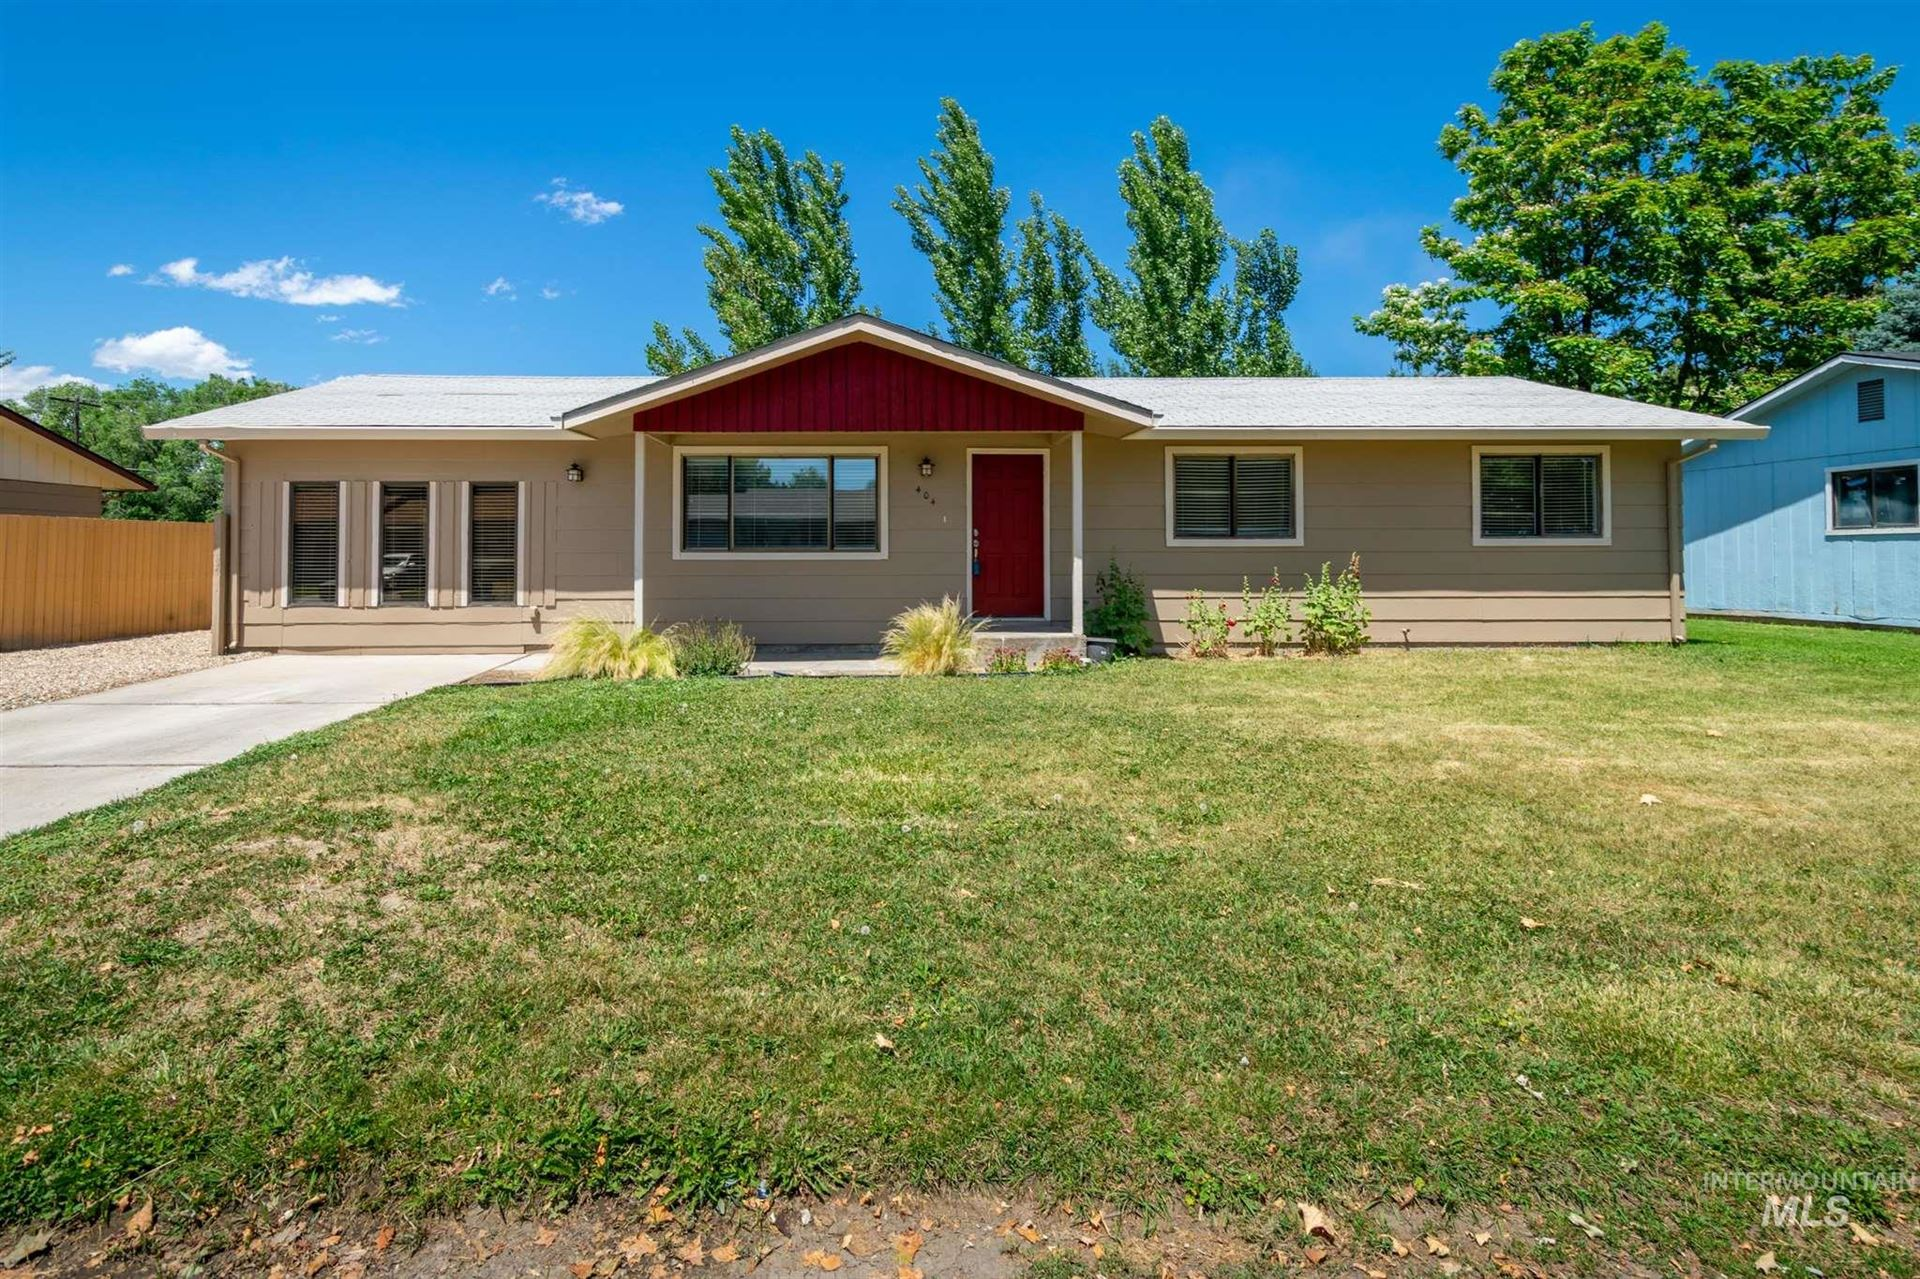 Photo of 404 W Colorado Ave, Homedale, ID 83628 (MLS # 98807217)